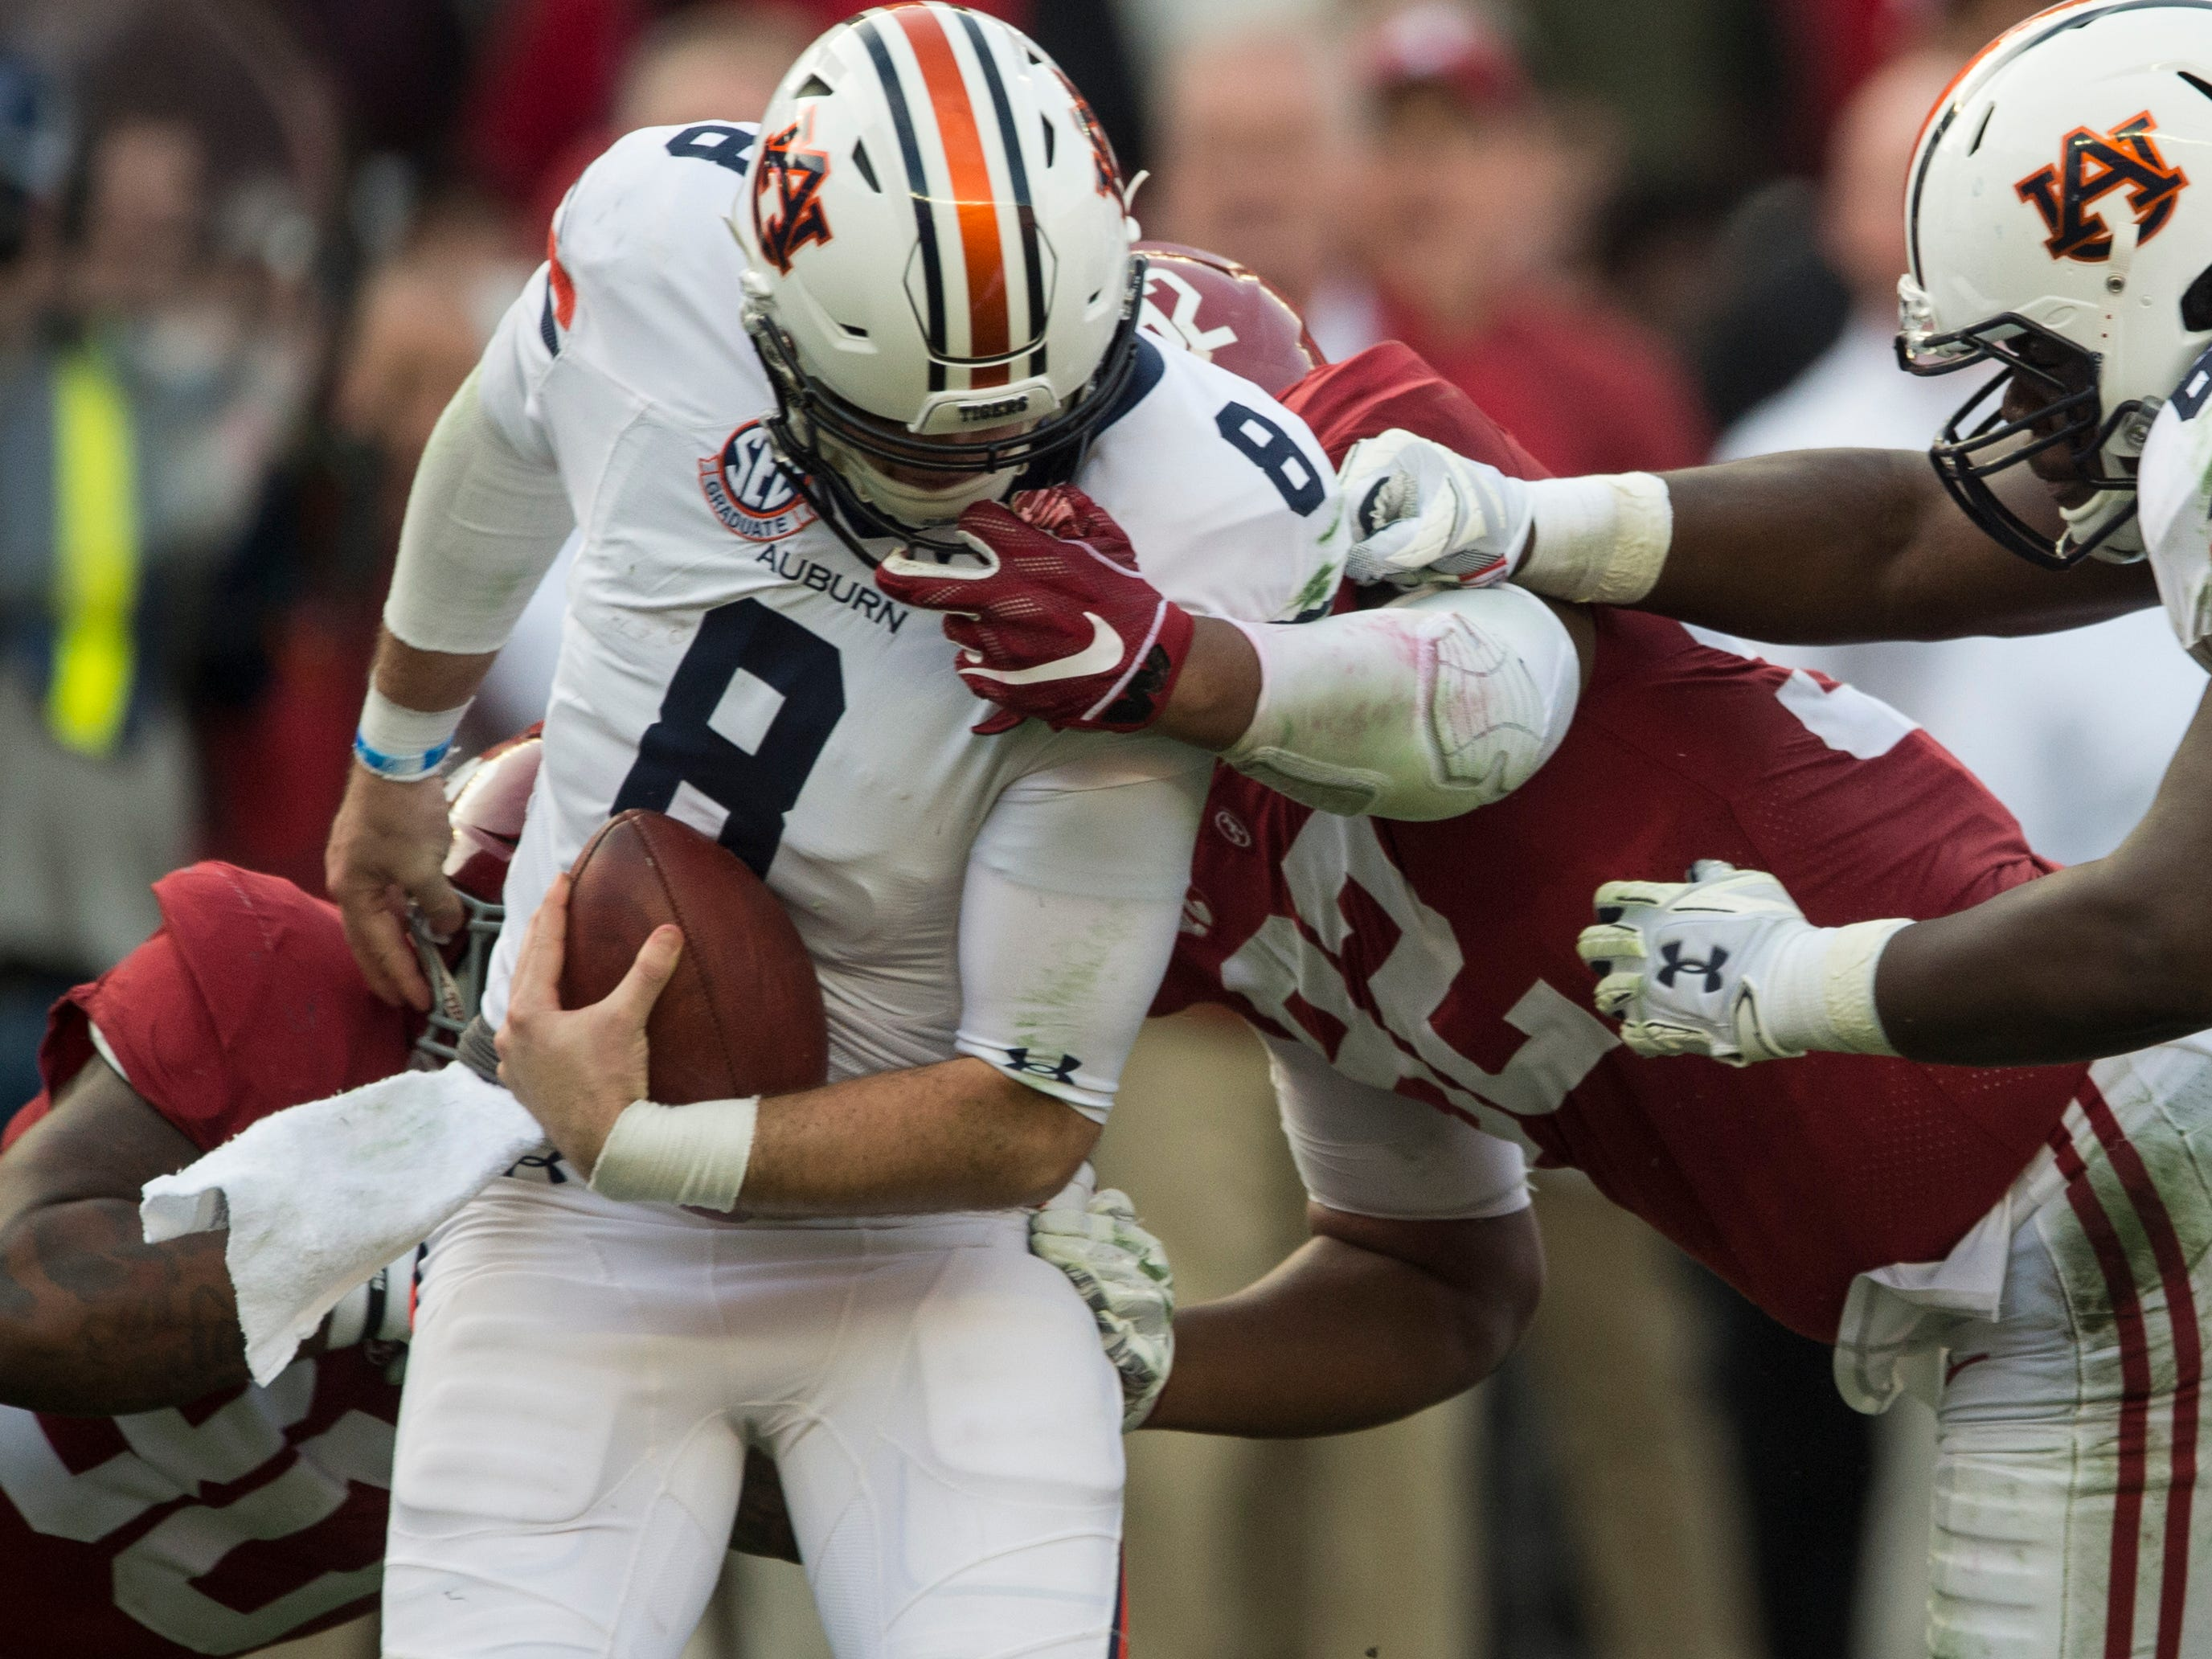 Auburn quarterback Jarrett Stidham (8) is sacked by Alabama defensive lineman Quinnen Williams (92) during the Iron Bowl at Bryant-Denny Stadium in Tuscaloosa, Ala., on Saturday, Nov. 24, 2018. Alabama leads Auburn 17-14 at halftime. A face mask penalty against Alabama was called on the play.